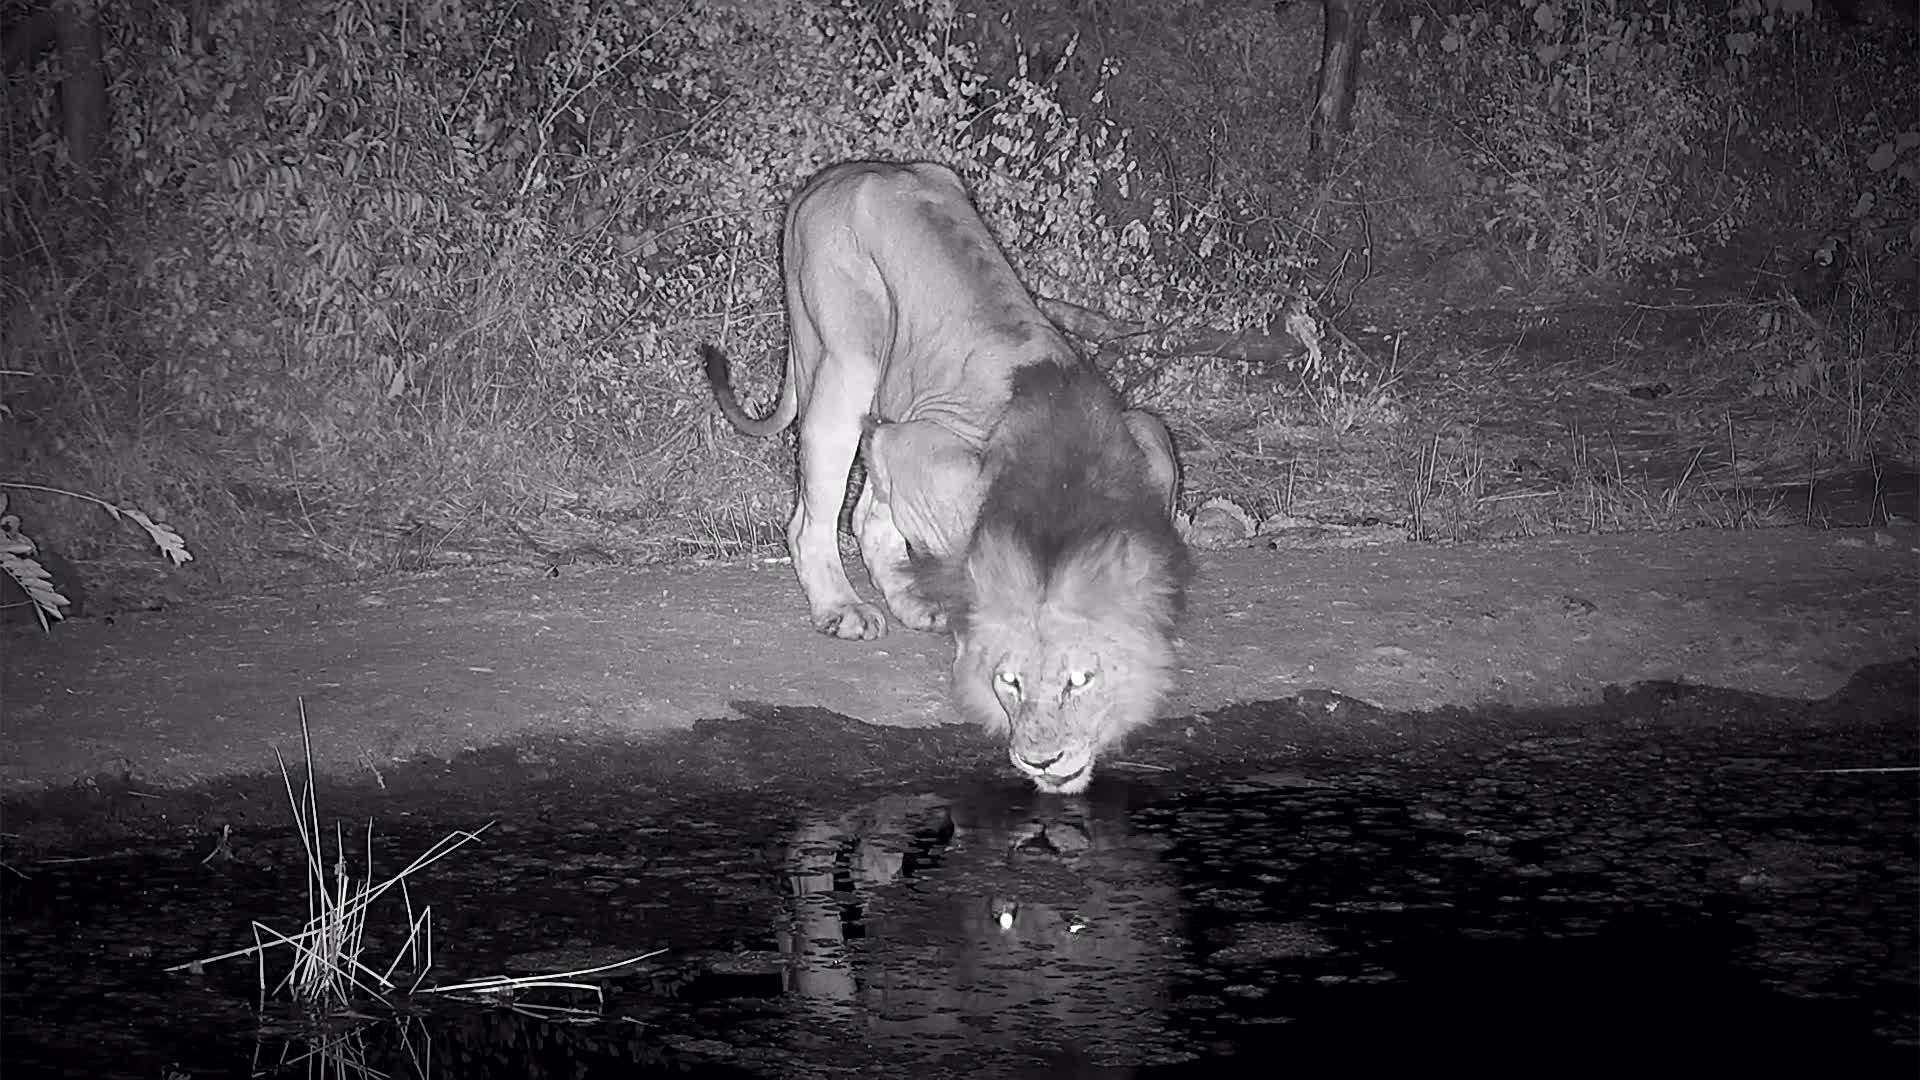 VIDEO: Quick video of a Lion having a drink before heading off